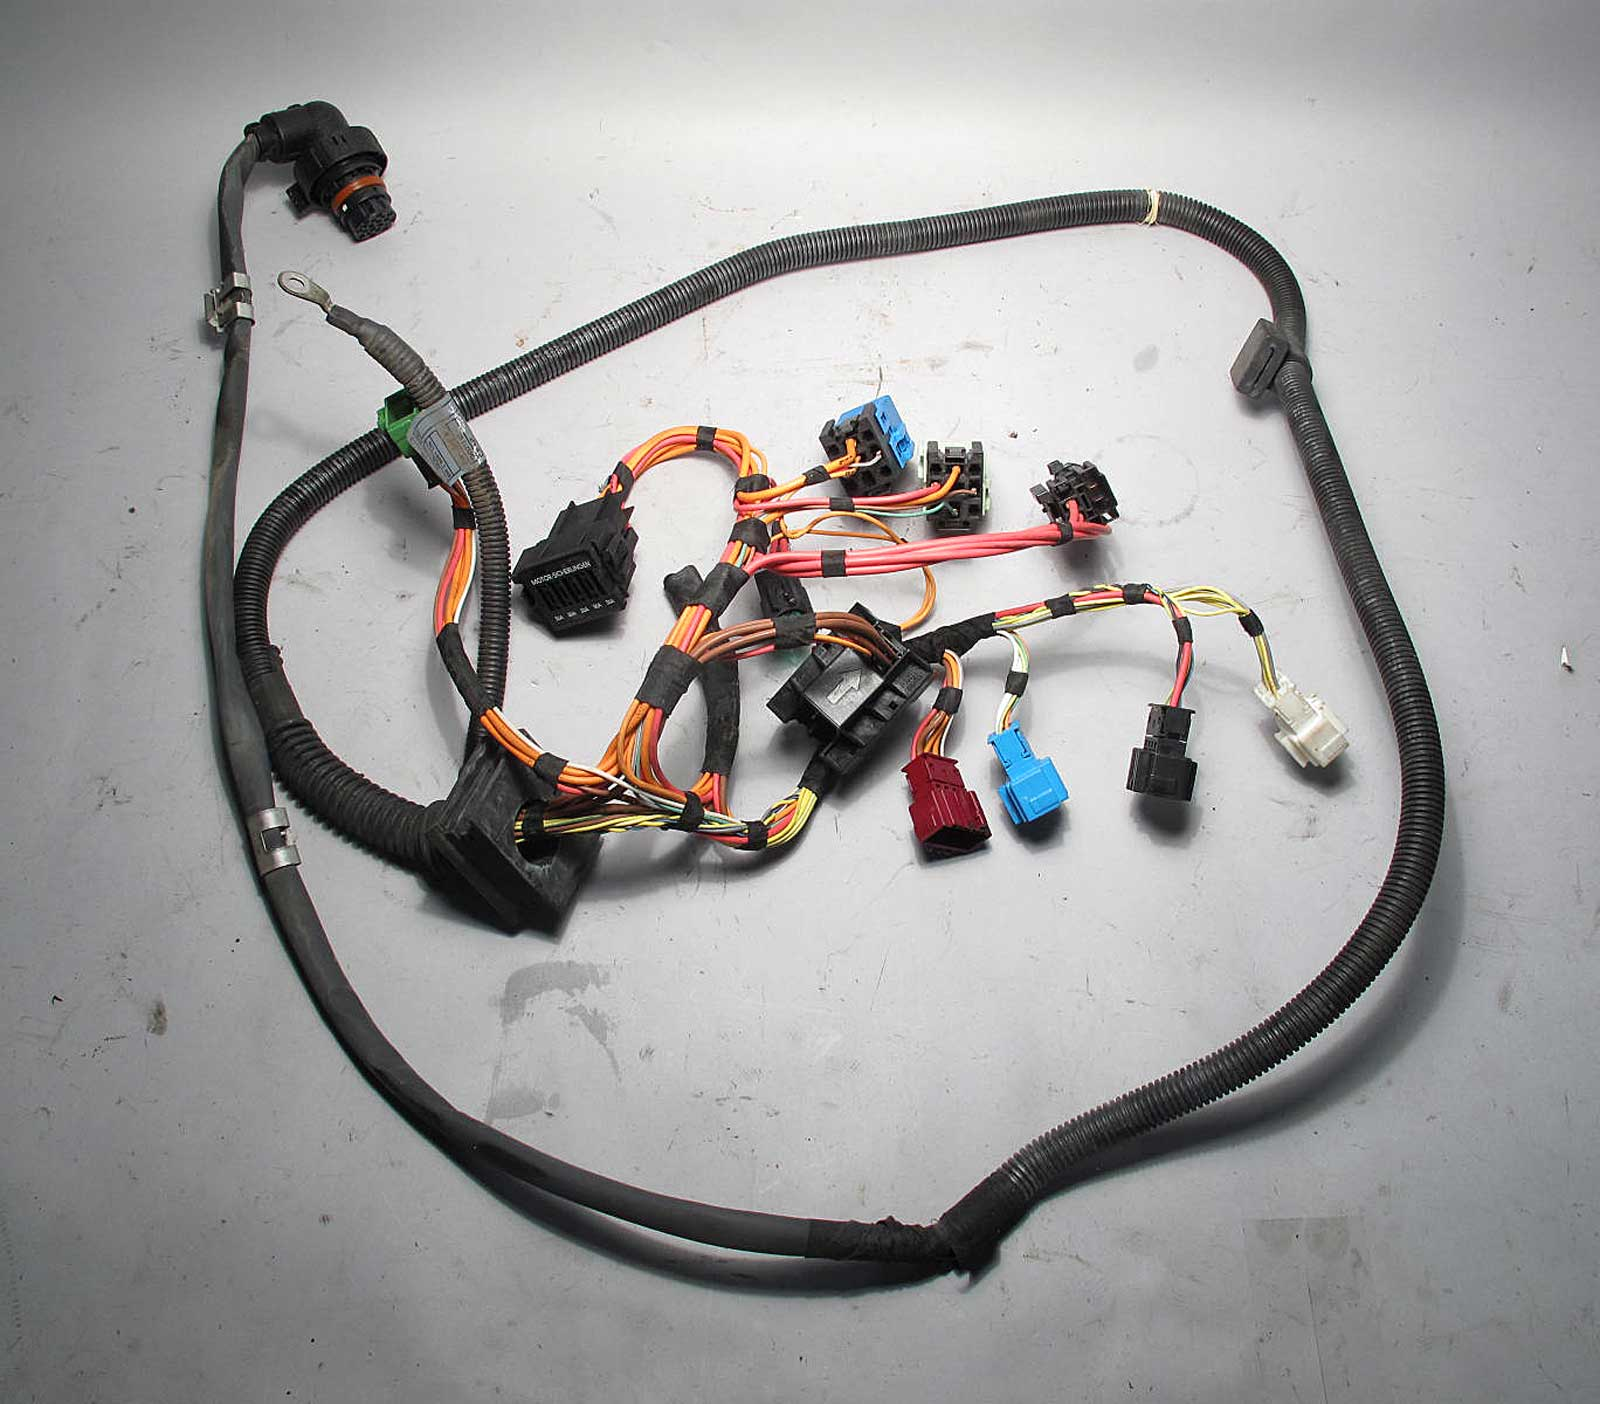 Who Makes Oem Bmw Wiring Harness